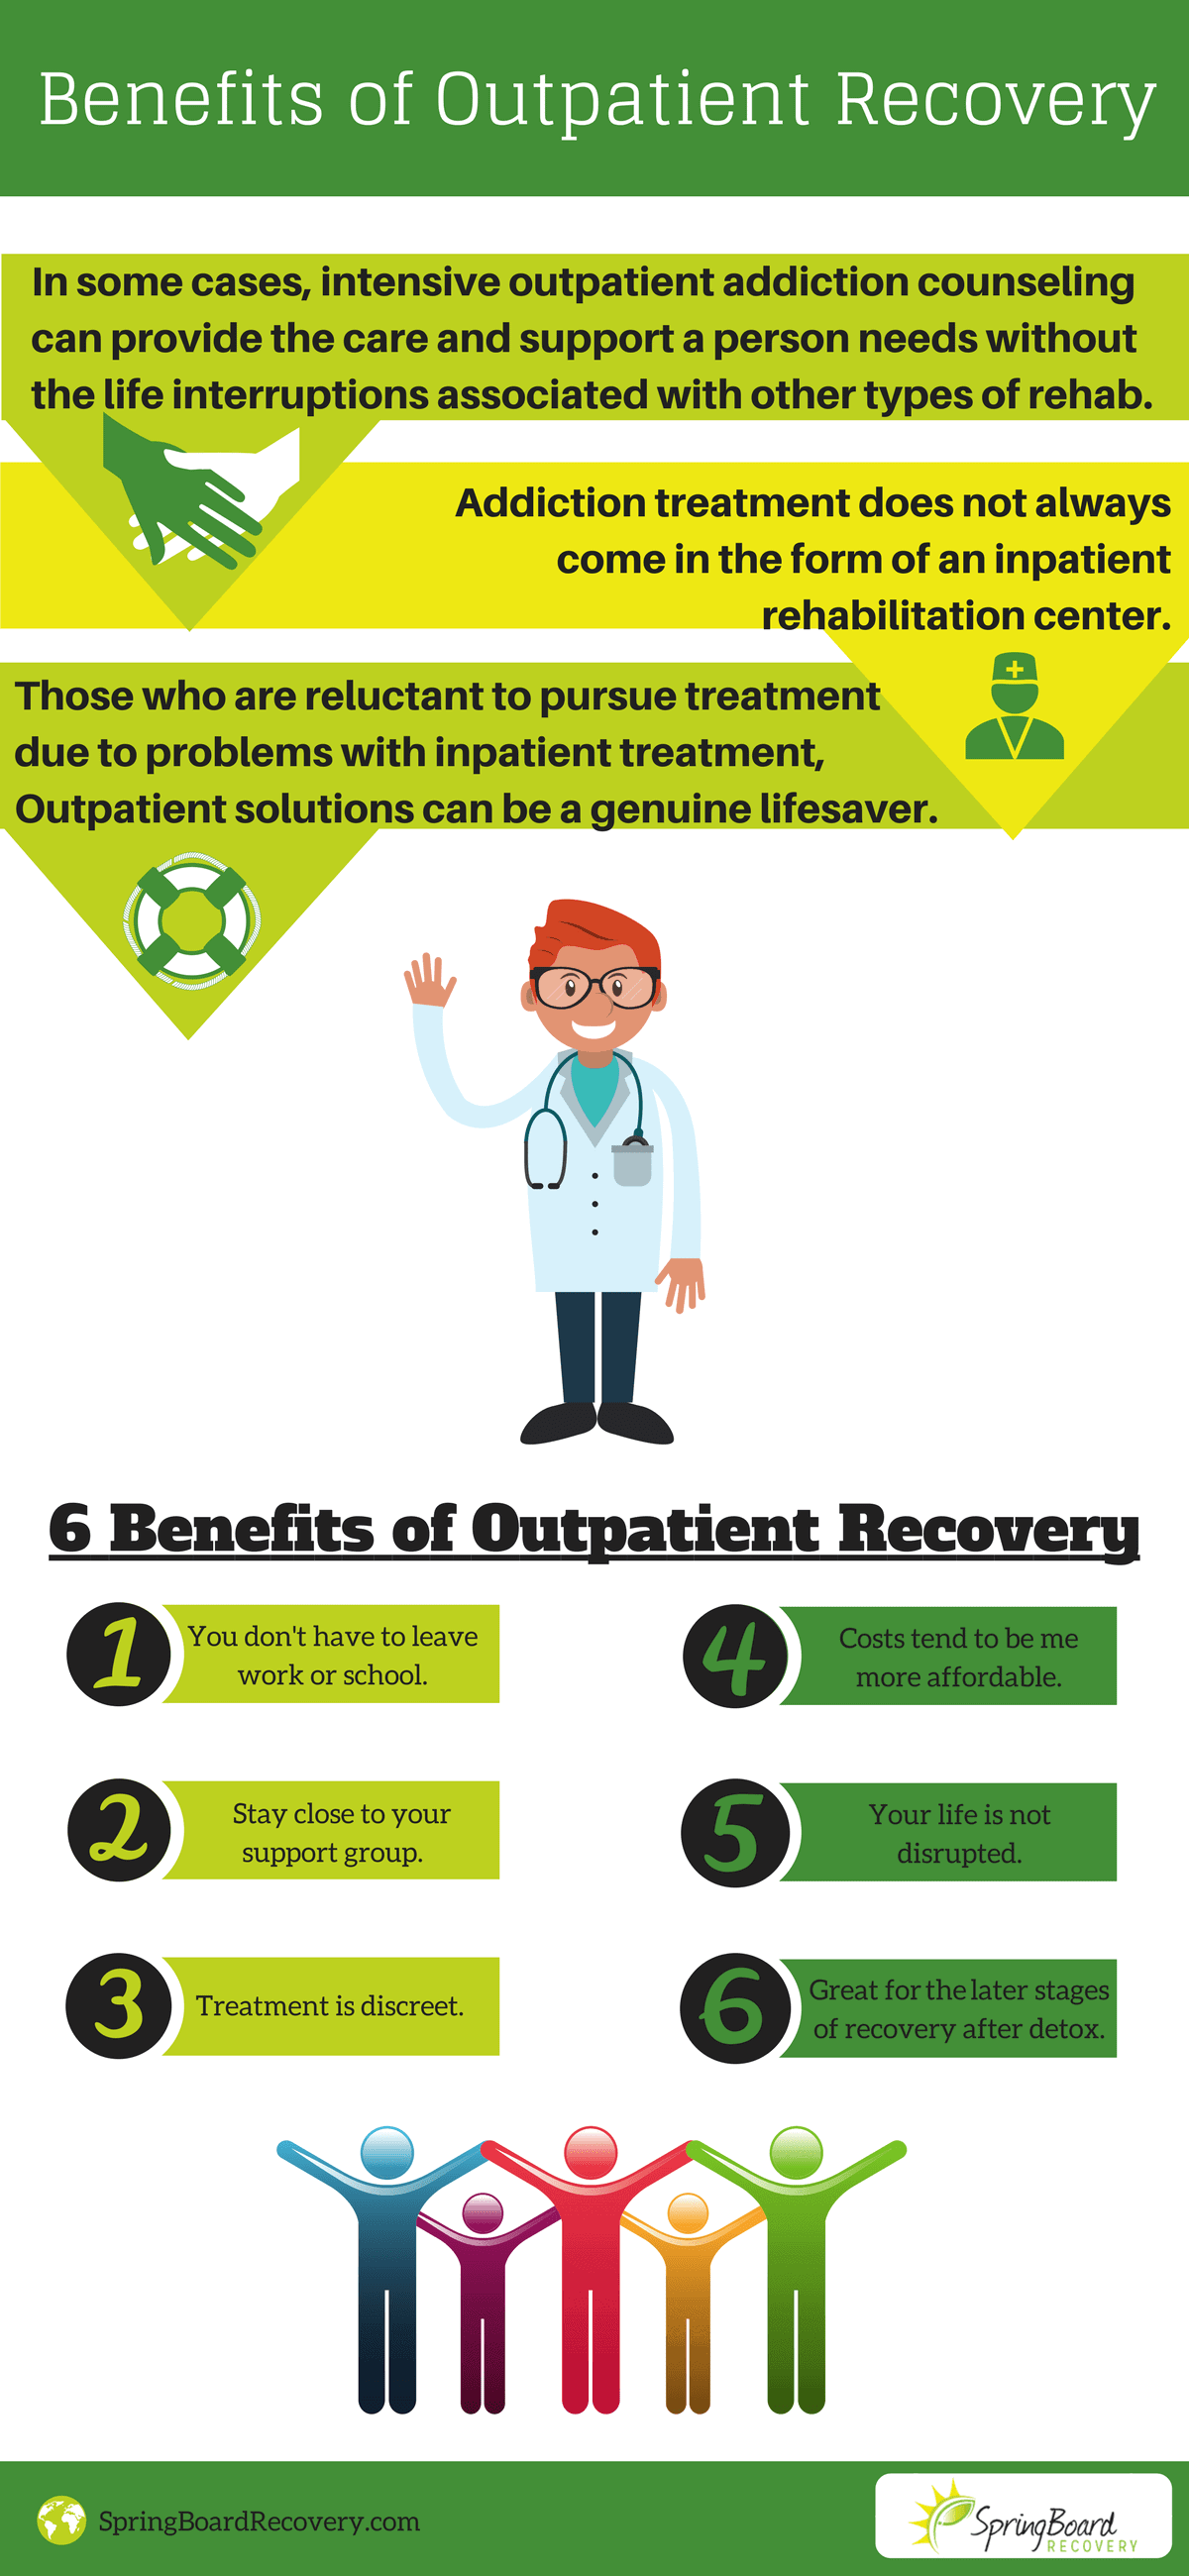 Benefits of intensive outpatient addiction treatment